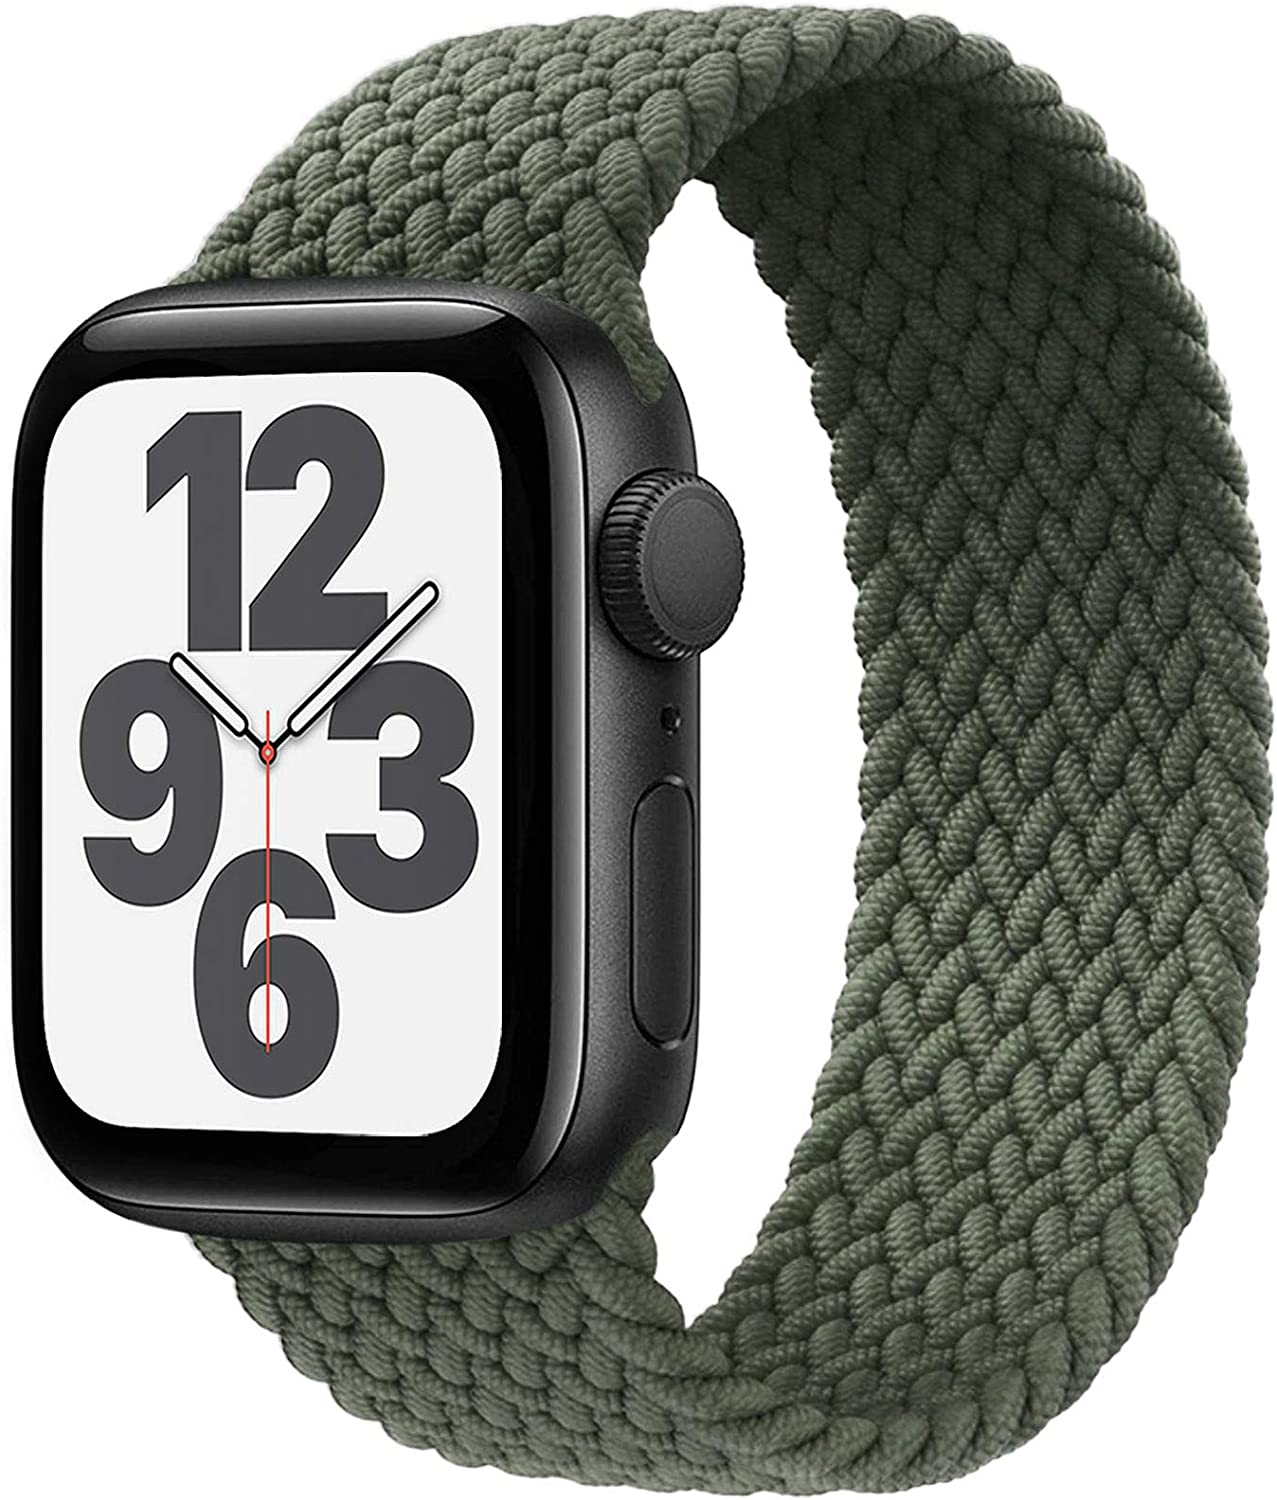 FnKer Braided Solo Loop Compatible with Apple Watch Bands 44mm/40mm SE/Series 6 Strap, Stretchable Woven Elastics Compatible with iWatch Series 5/4/3/2/1 38mm 42mm-(Inverness Green-38/40-3)